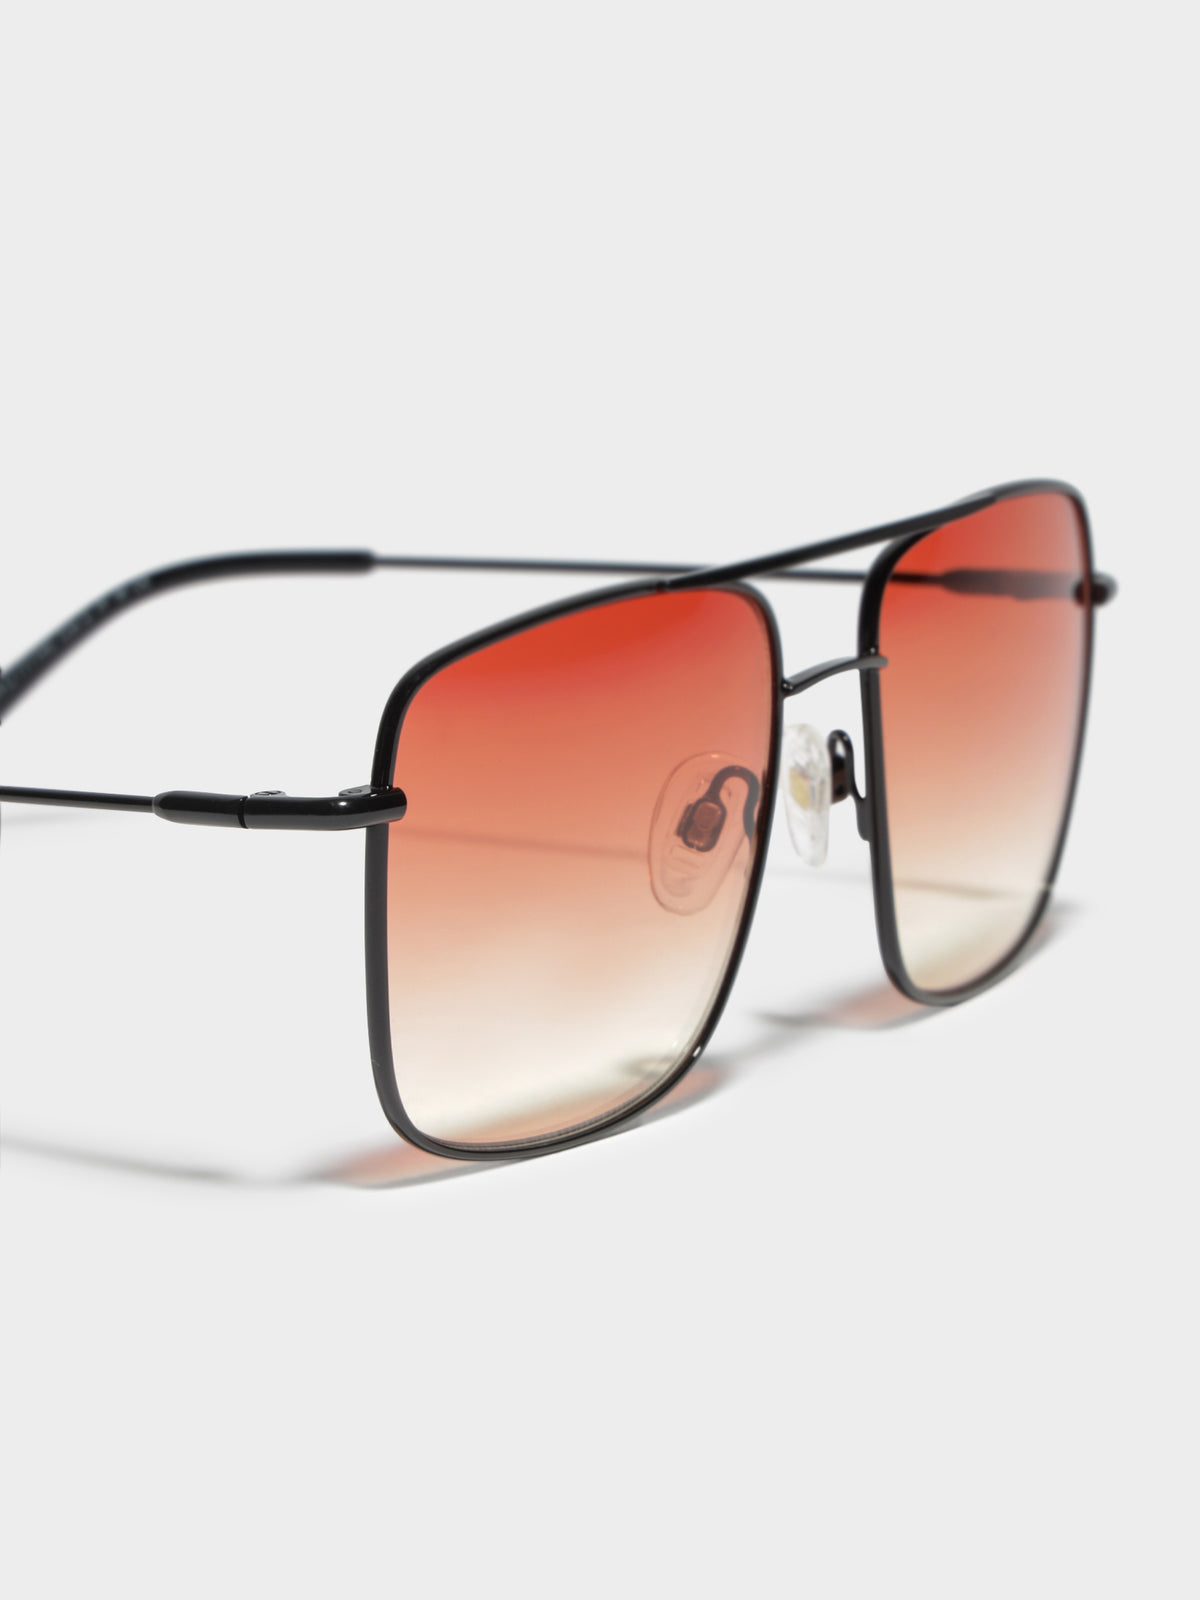 CL686201 Reaction Sunglasses in Black Sunset